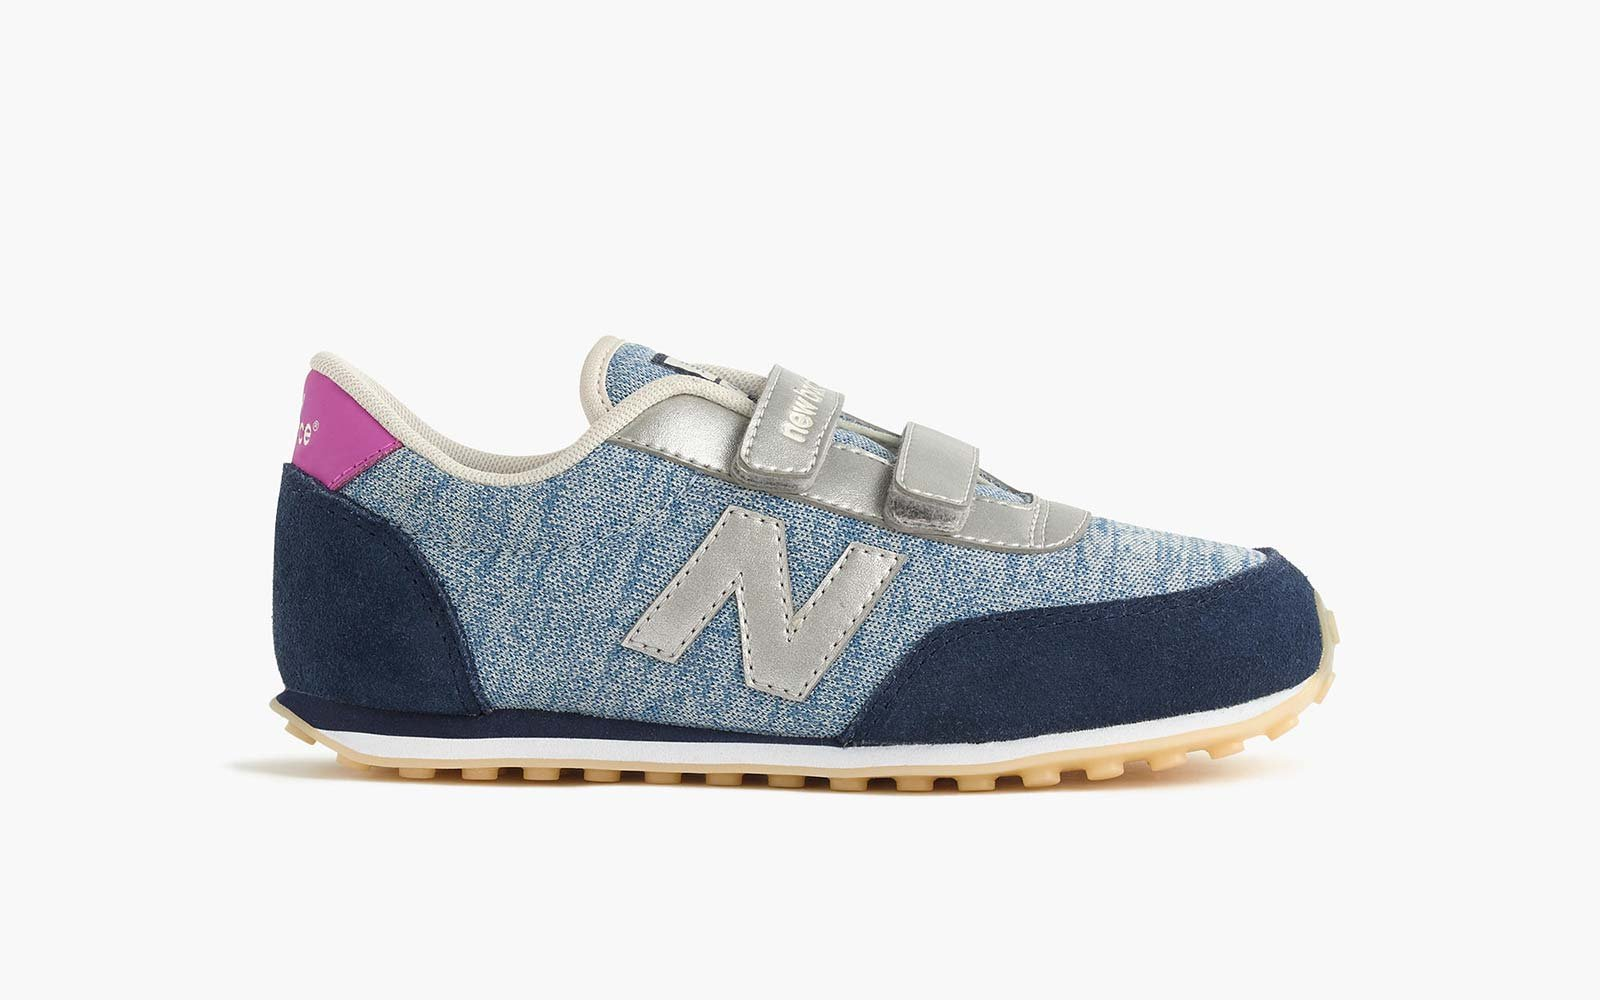 Kids' New Balance for Crewcuts 410 Velcro Sneaker